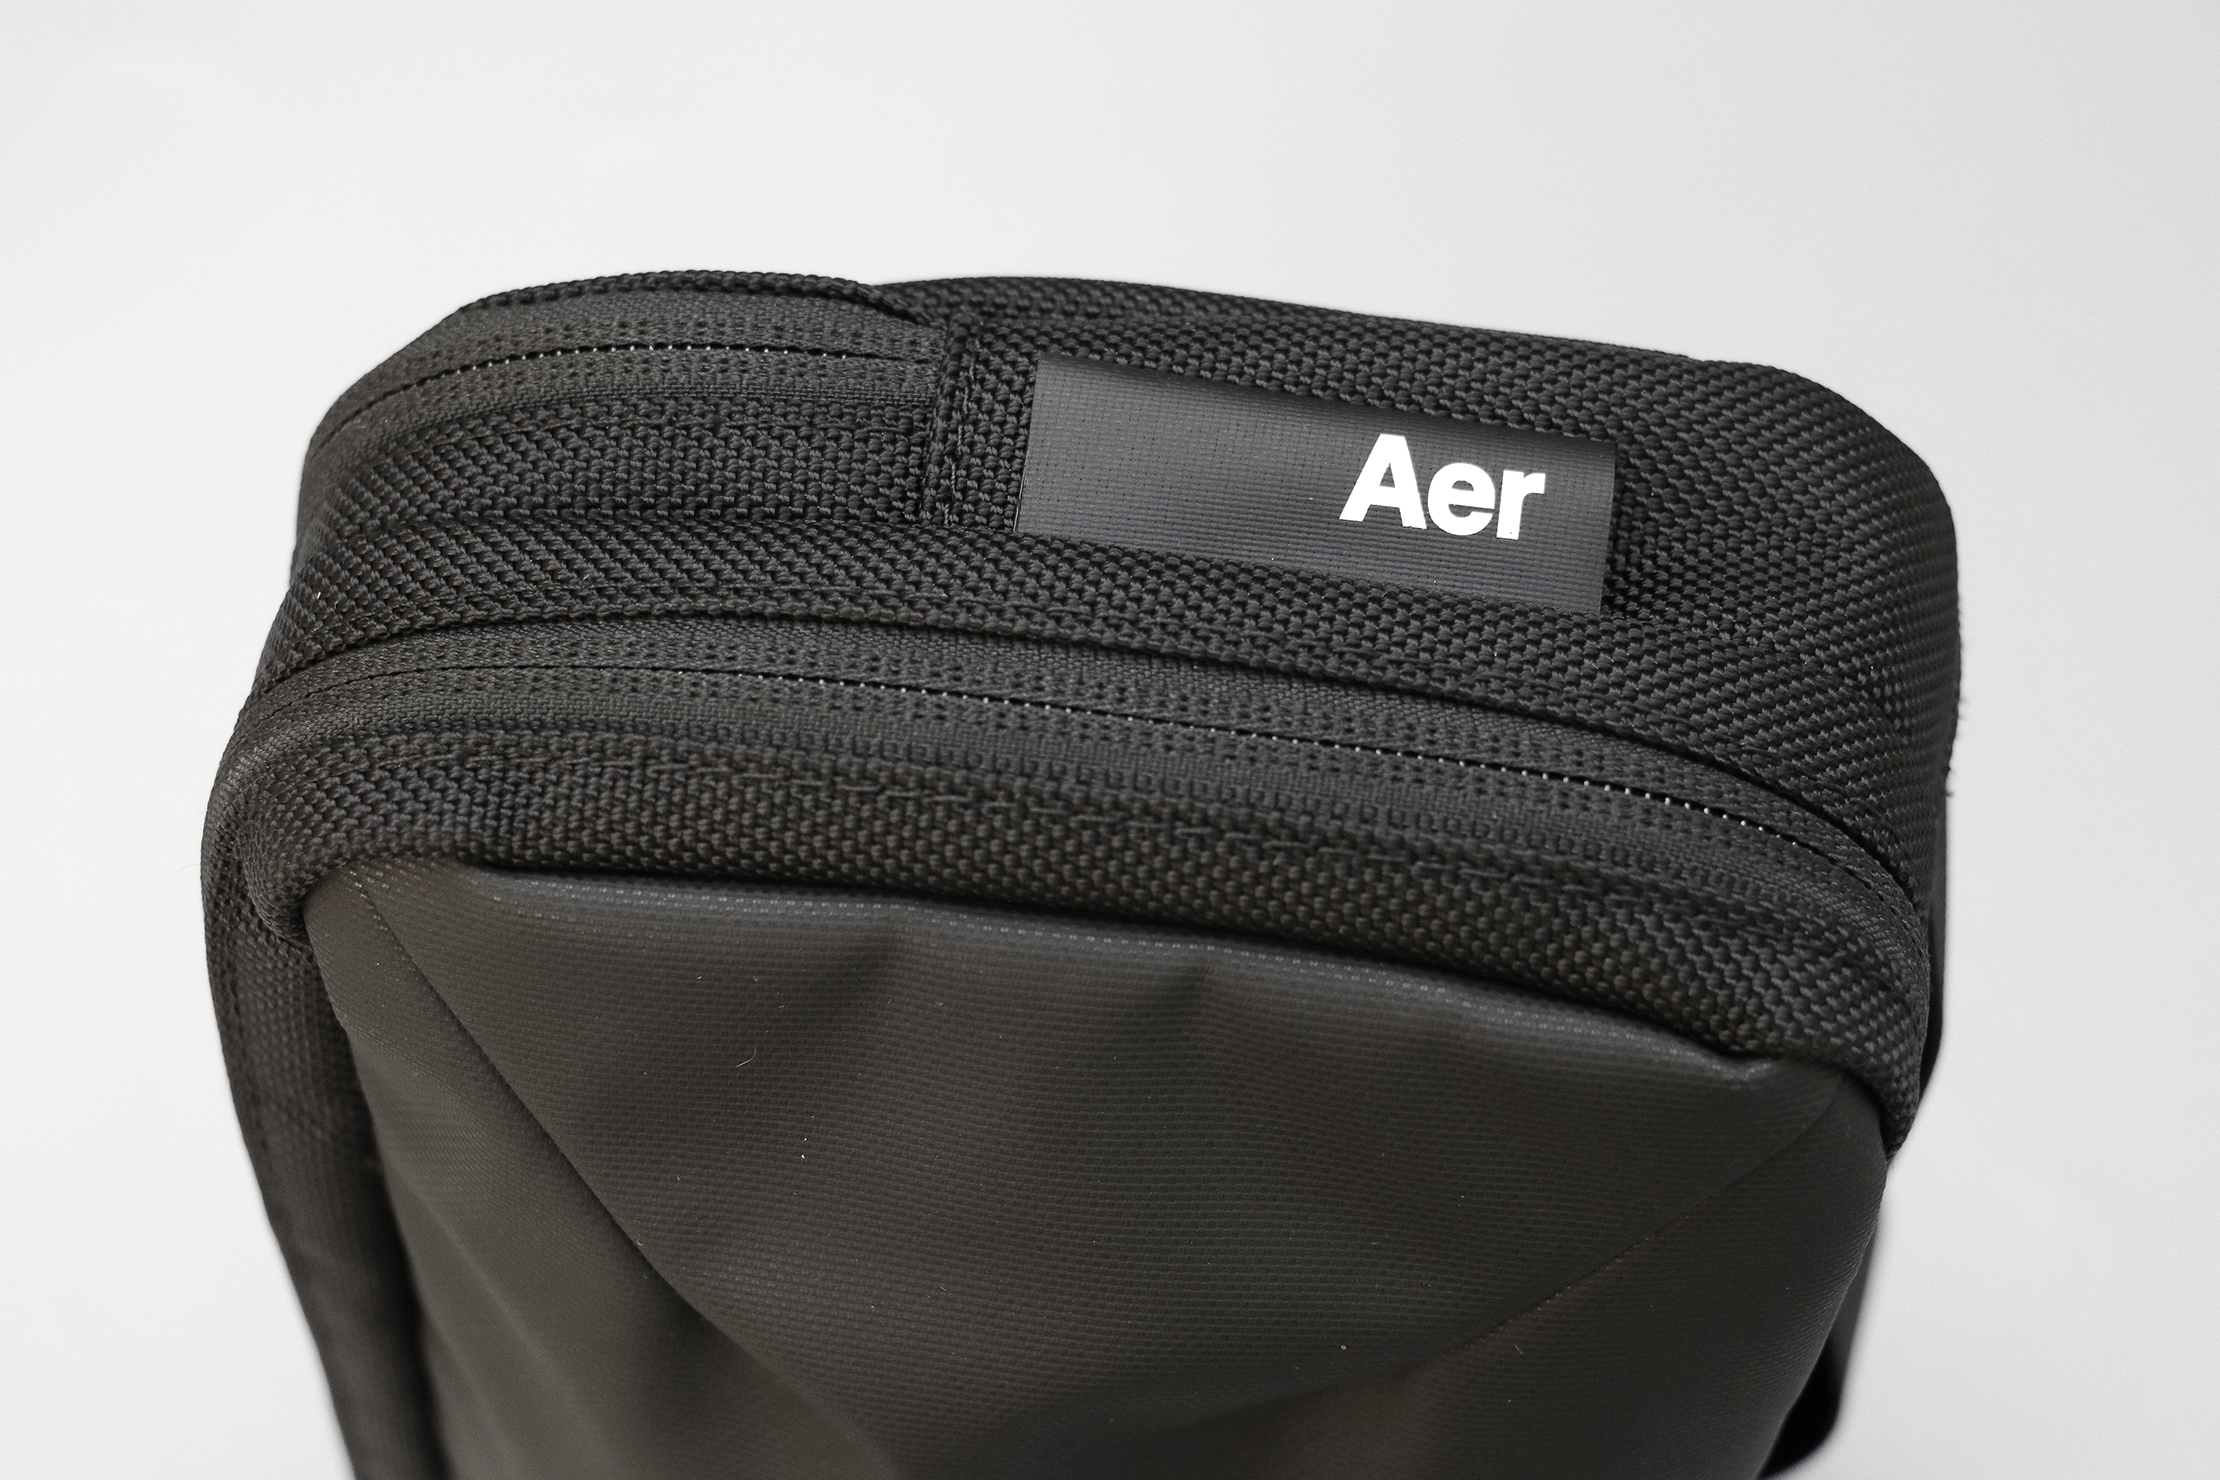 Aer Cable Kit 2 Material and Logo